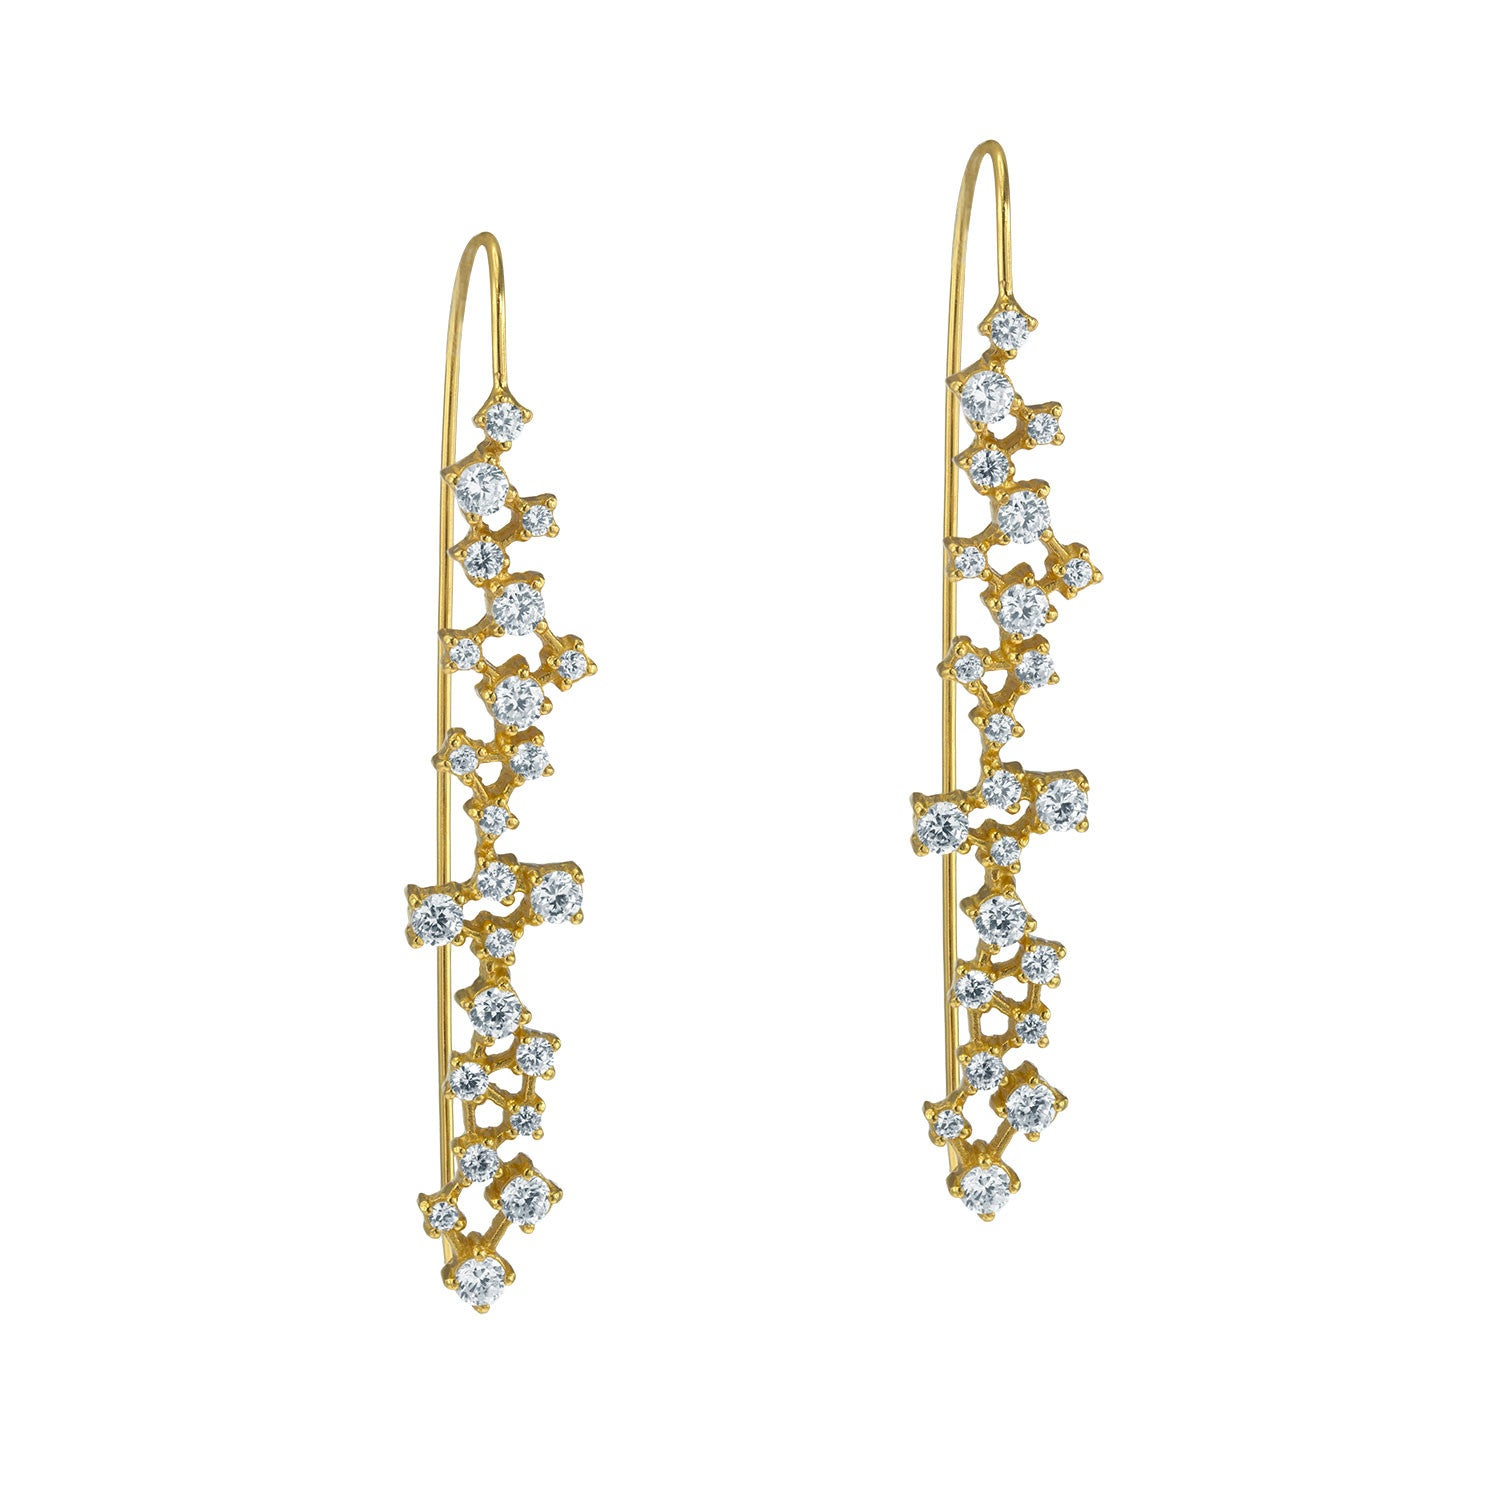 """CLUSTER LOVE"" 18K GOLD PLATED OVER STERLING SILVER CUBIC ZIRCONIAS THREADER EARRINGS"